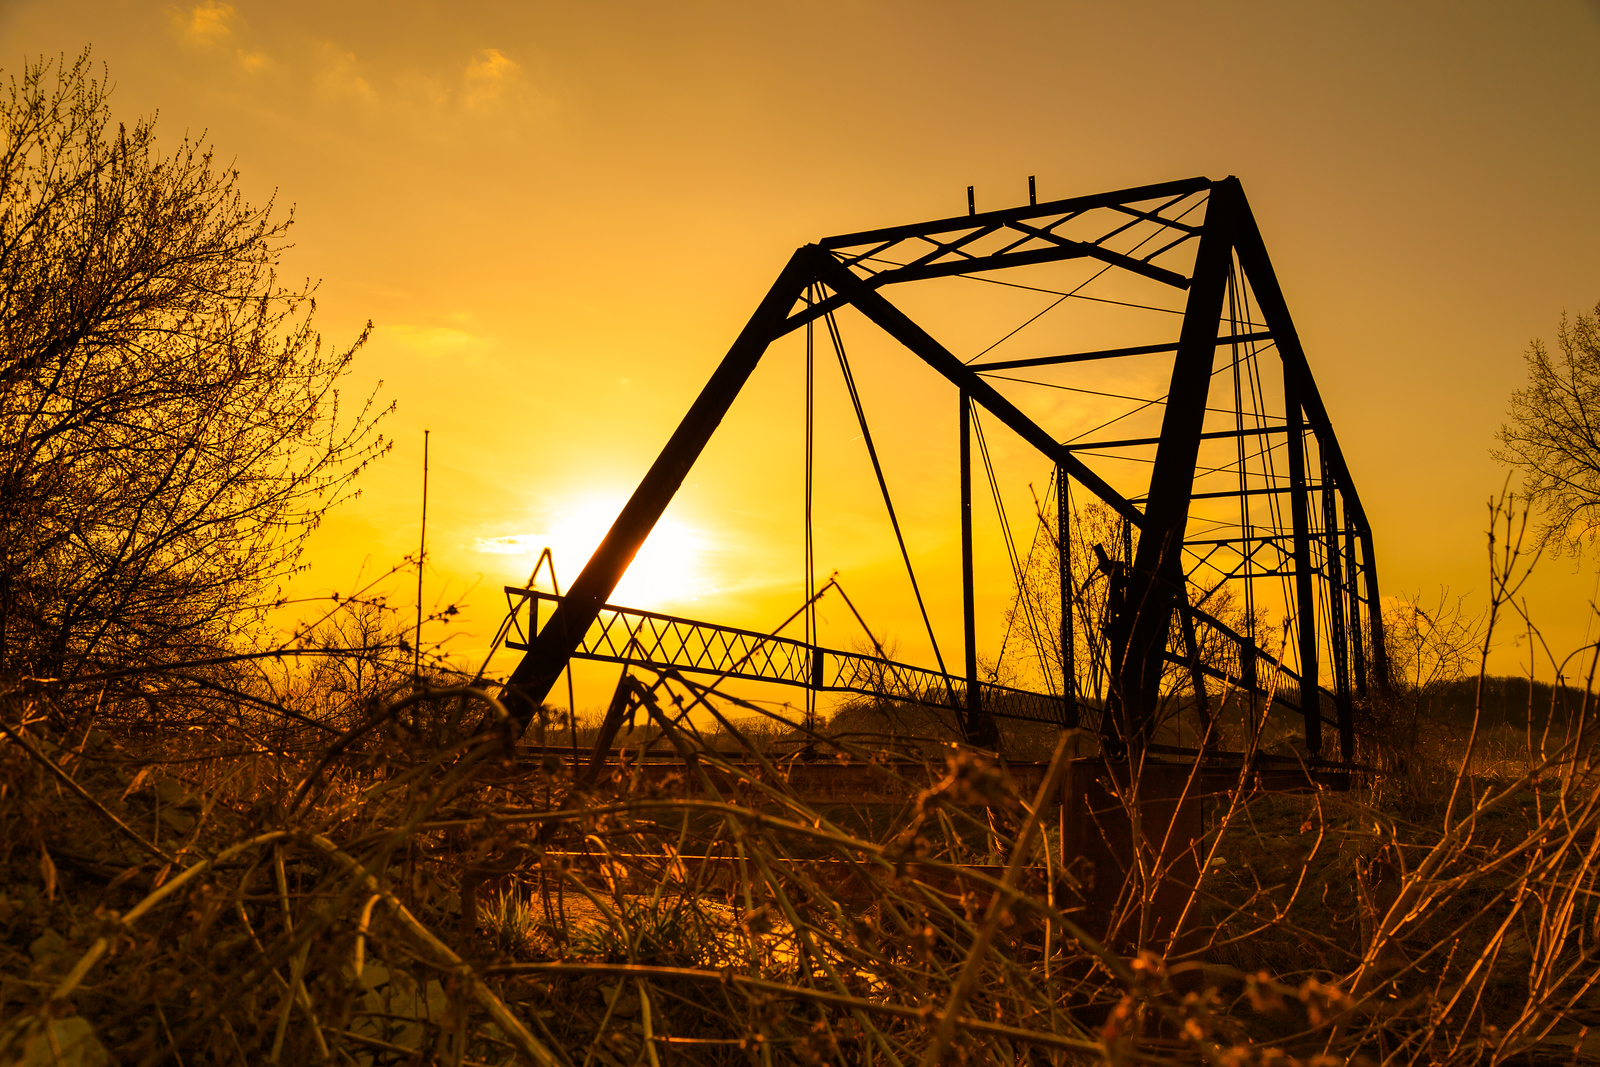 The skeleton of an old rural bridge from the late 1800s stands defiant in the late spring afternoon hours